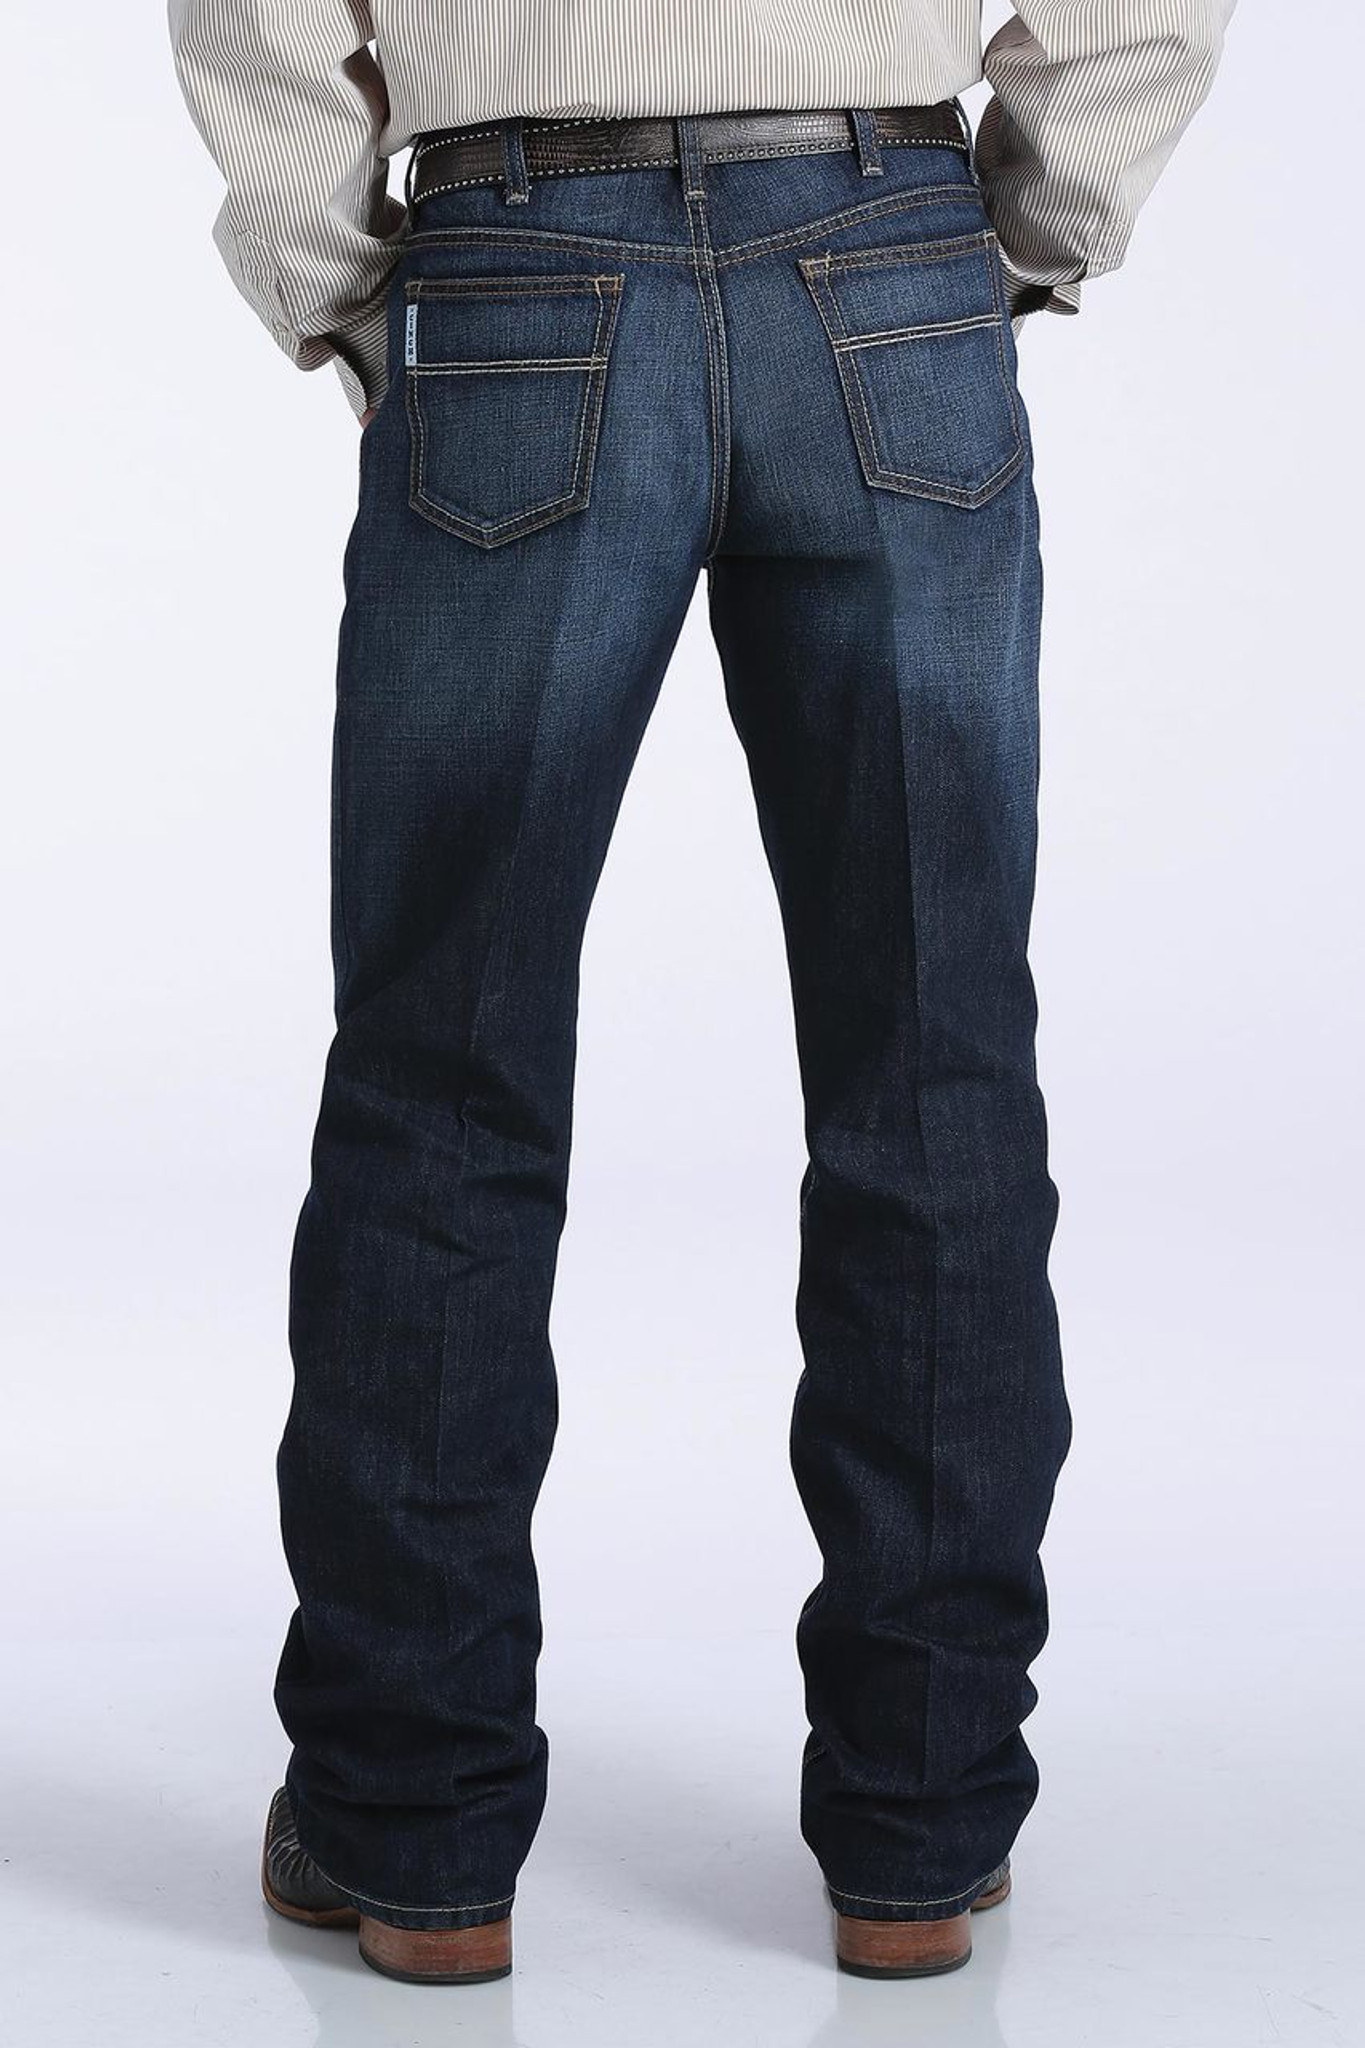 1a38949721a2 Men s Cinch Jeans